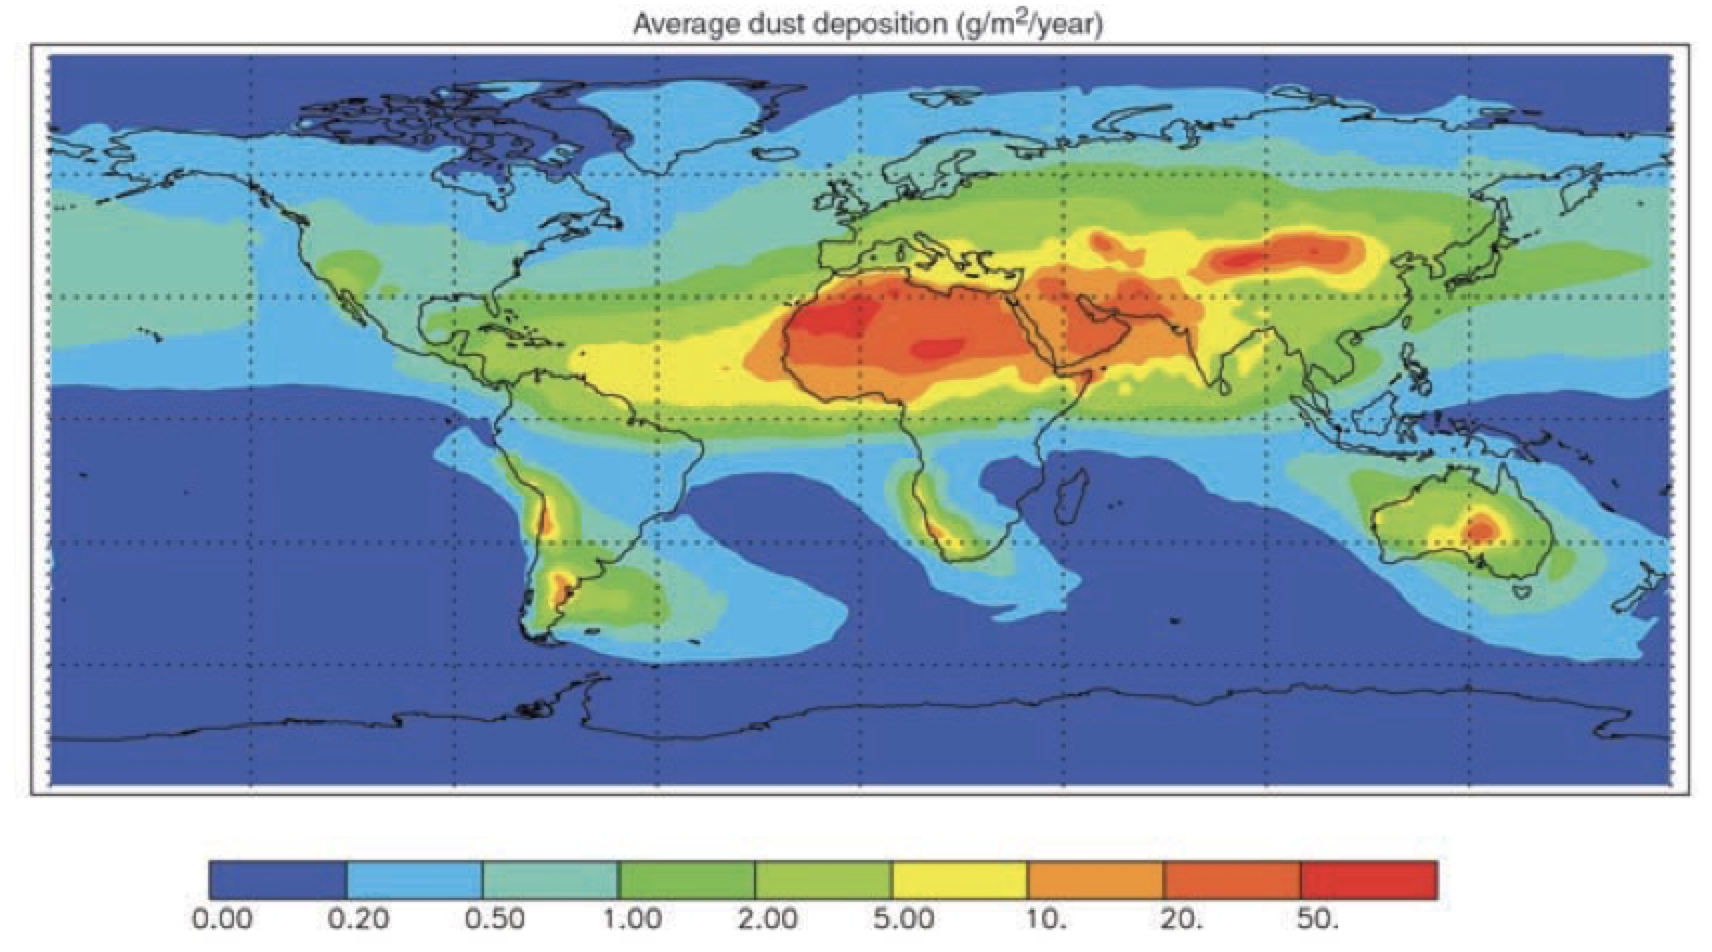 Fig. 12: Annual dust flux (g/m2/year) based on composite of three studies matching satellite optical depth to ground-based measurements. selecting insulators using satellite measurements of air pollution Selecting Insulators Using Satellite Measurements of Air Pollution Screen Shot 2016 06 02 at 4